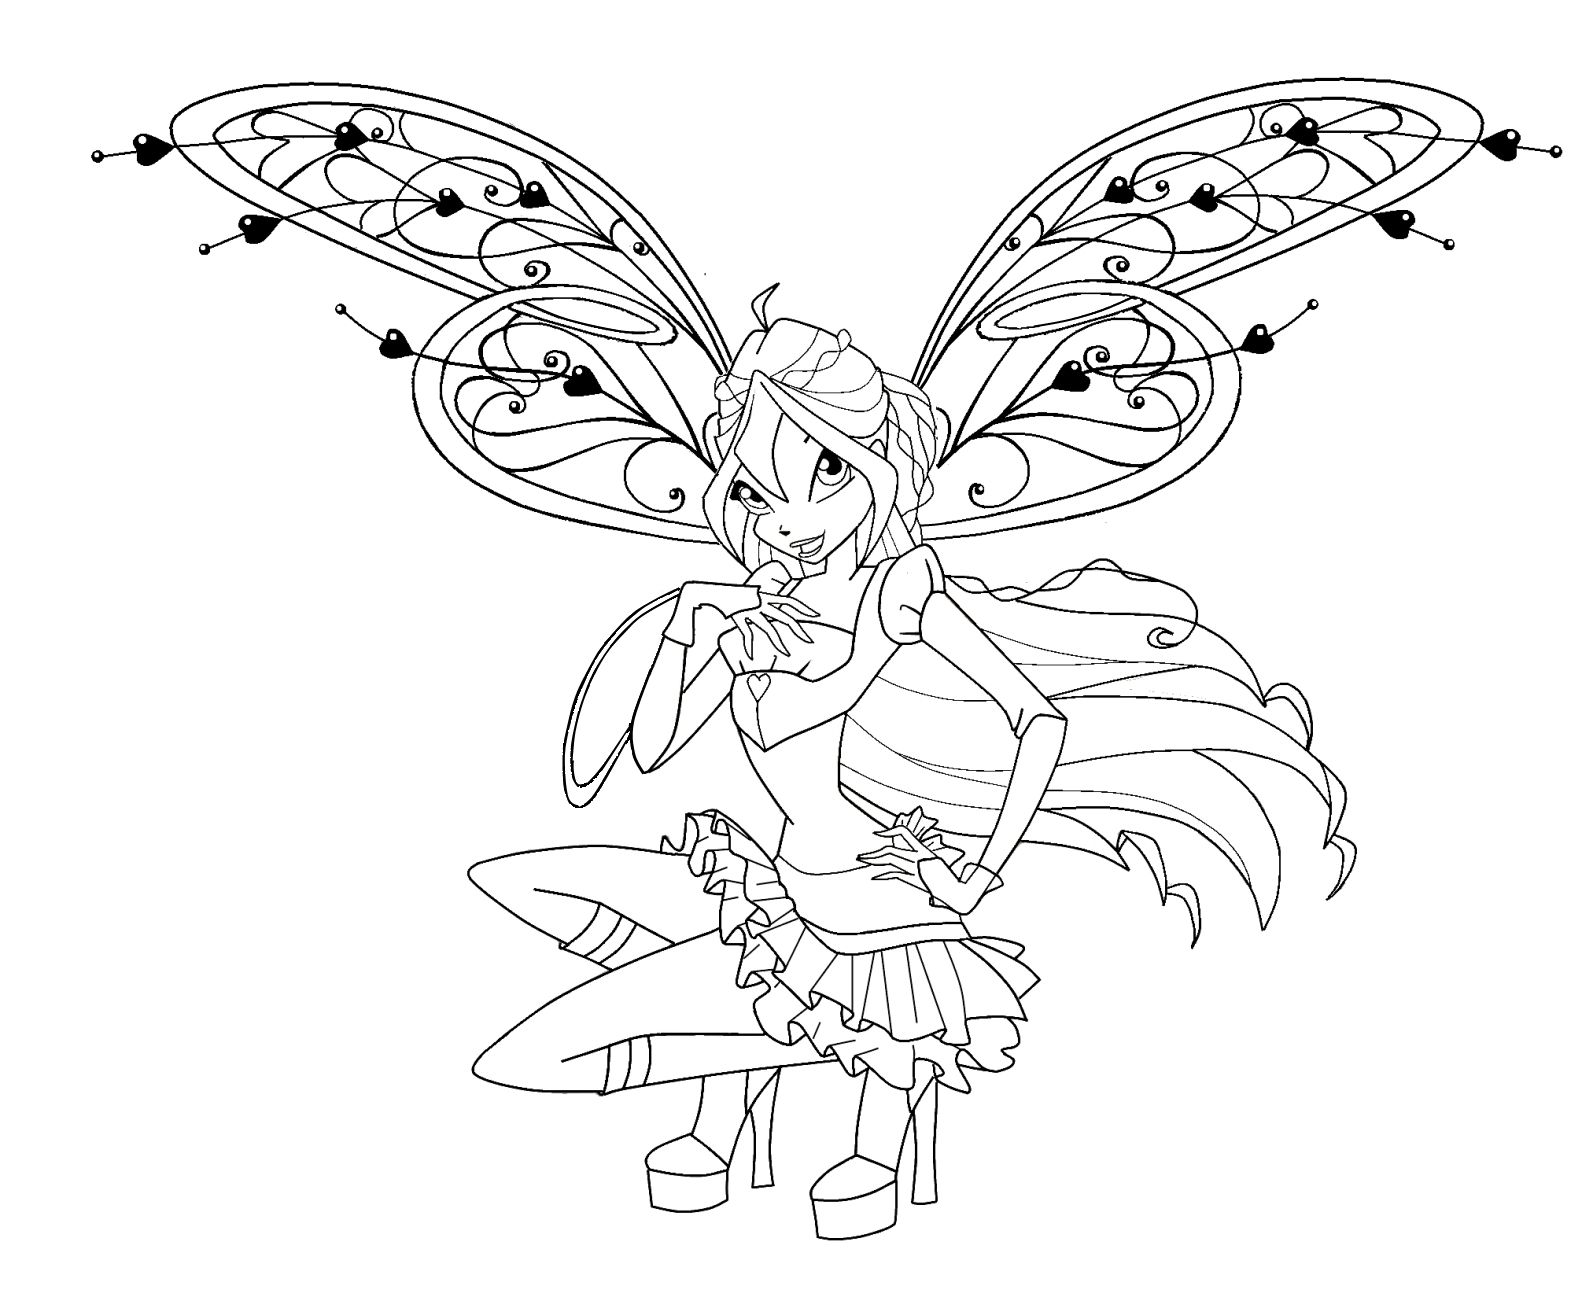 Pin By Boglarka Kovacs On Szinezo Love Coloring Pages Coloring Pages Fairy Tattoo